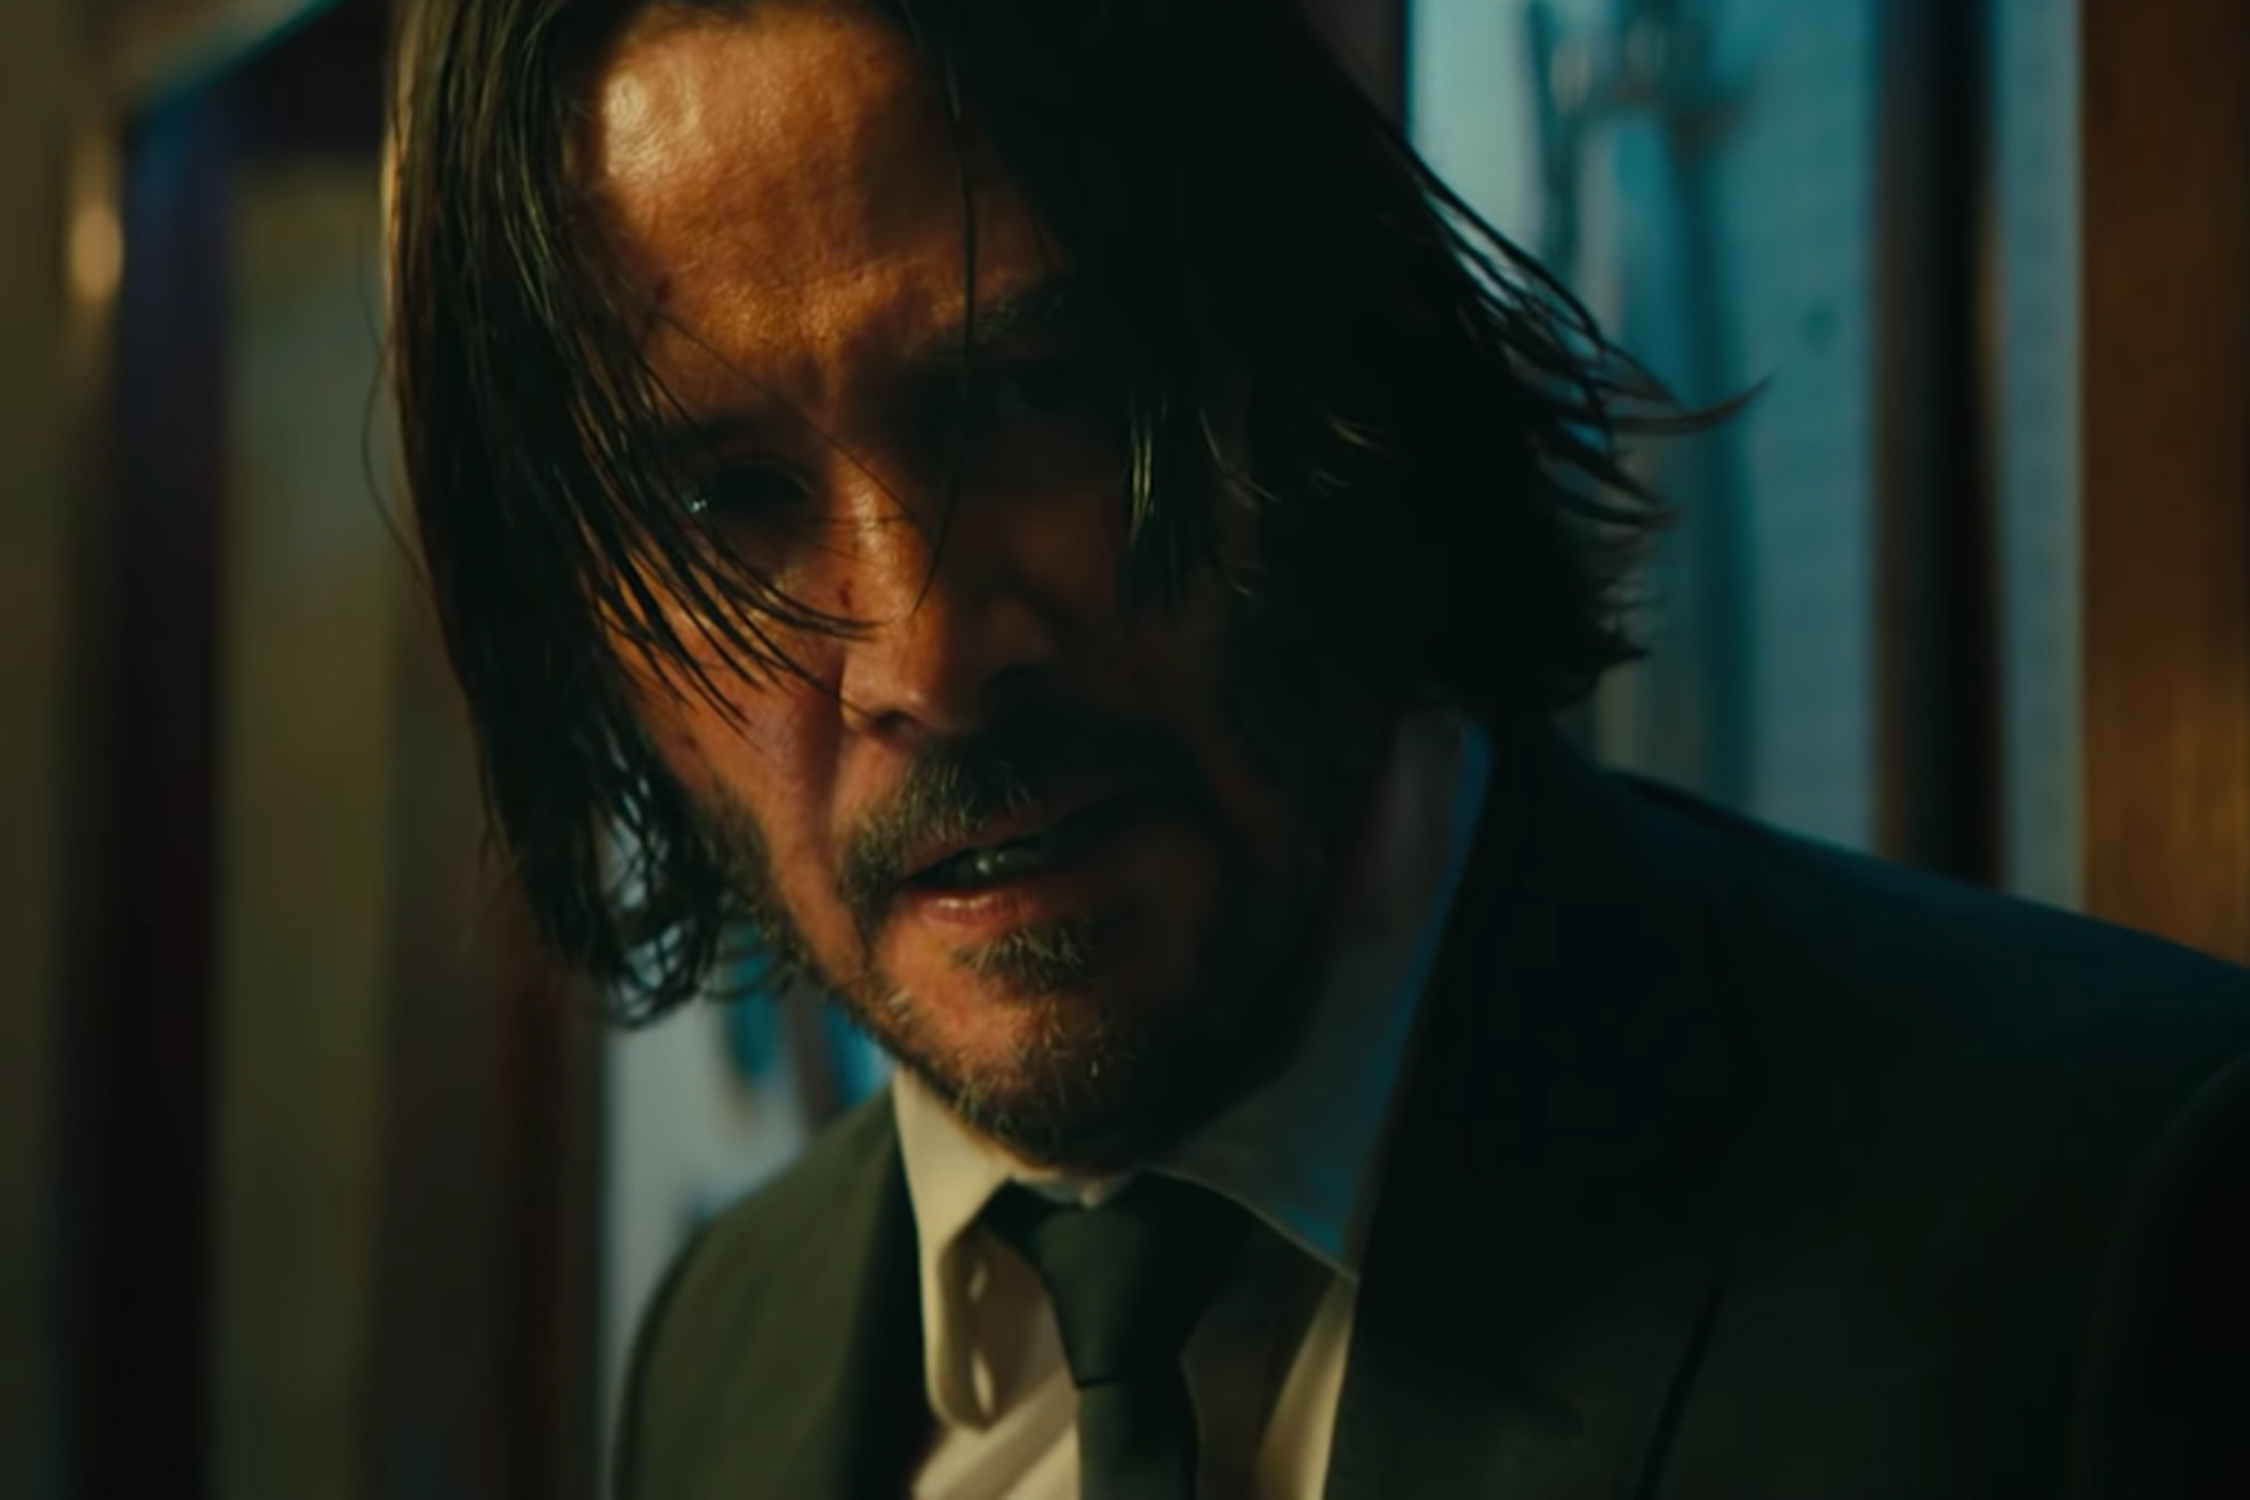 Keanu Reeves reprises his role as John Wick in the action franchise's third entry